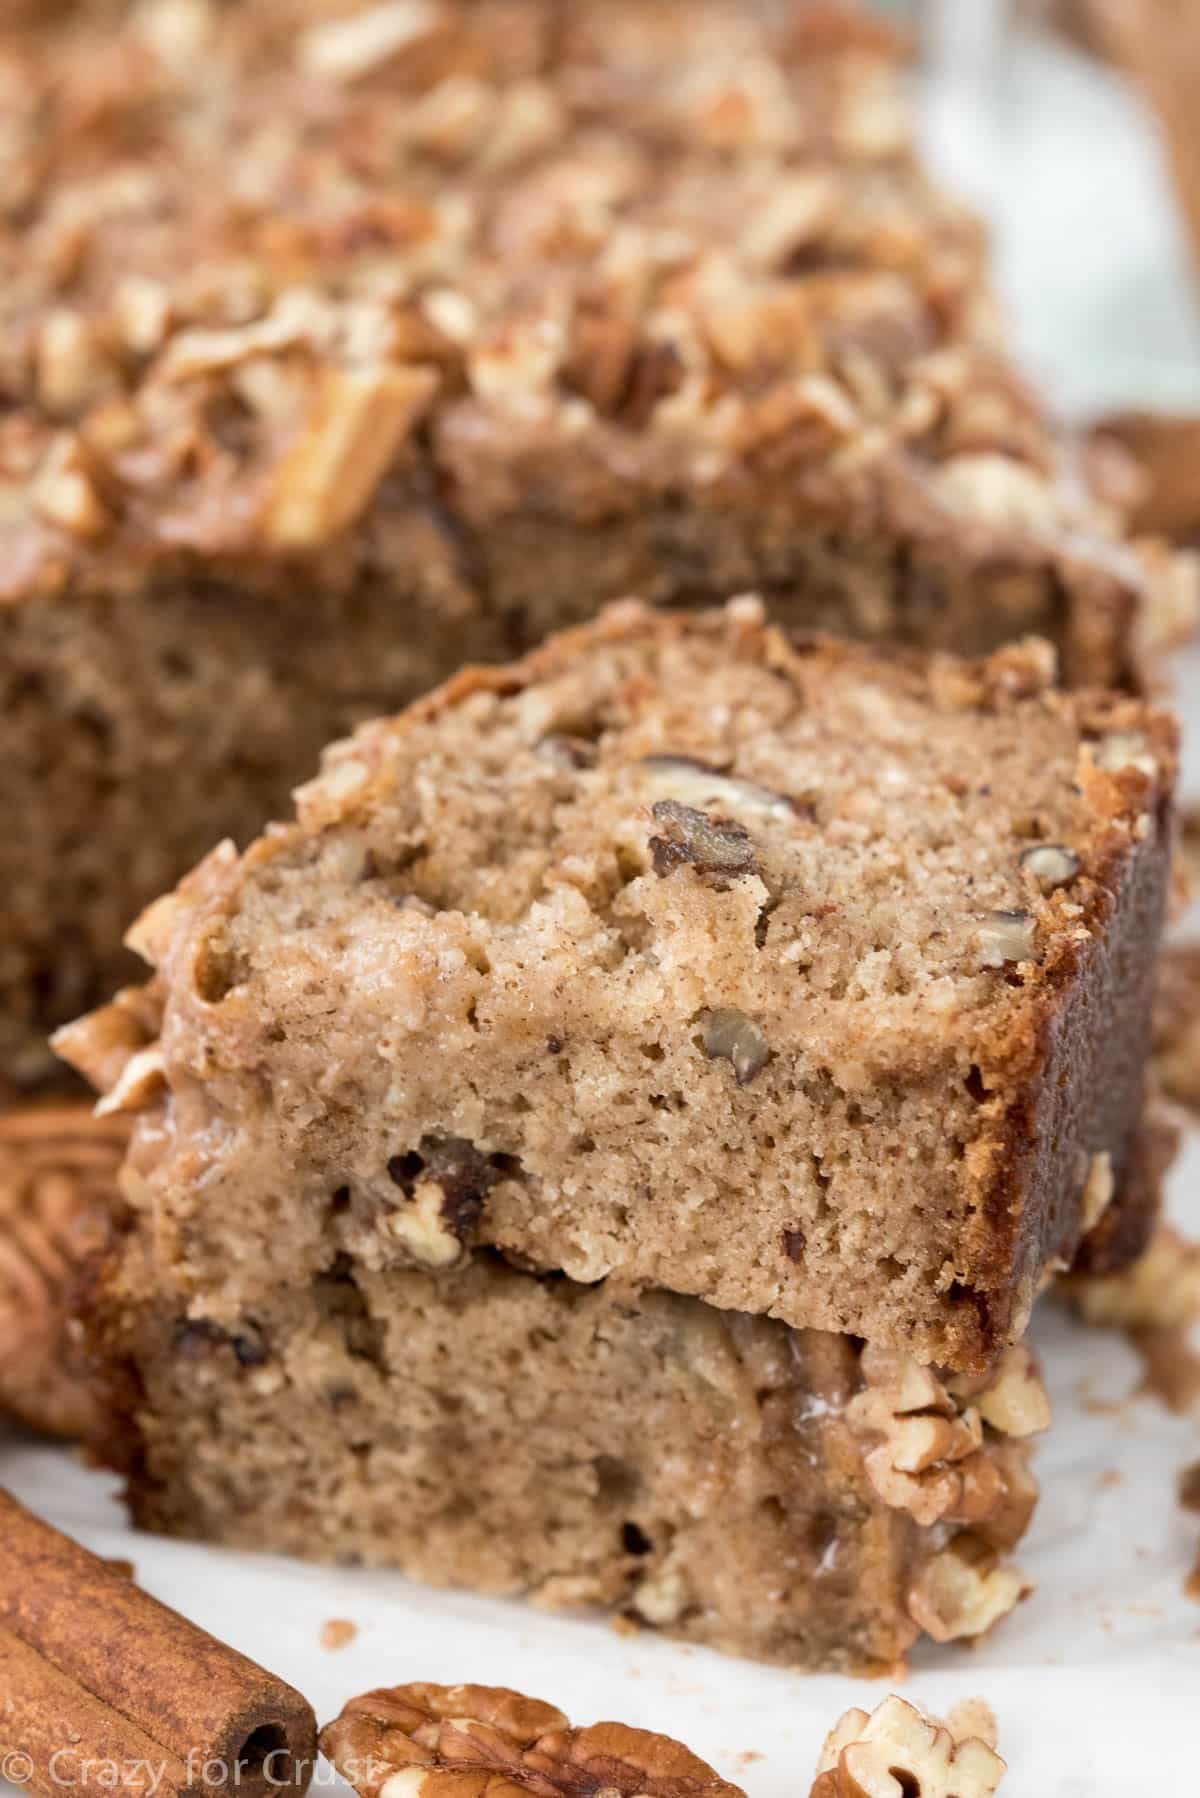 Cinnamon Pecan Banana Bread is such an easy recipe! Yummy banana bread filled with cinnamon spices and pecans with a cinnamon glaze!